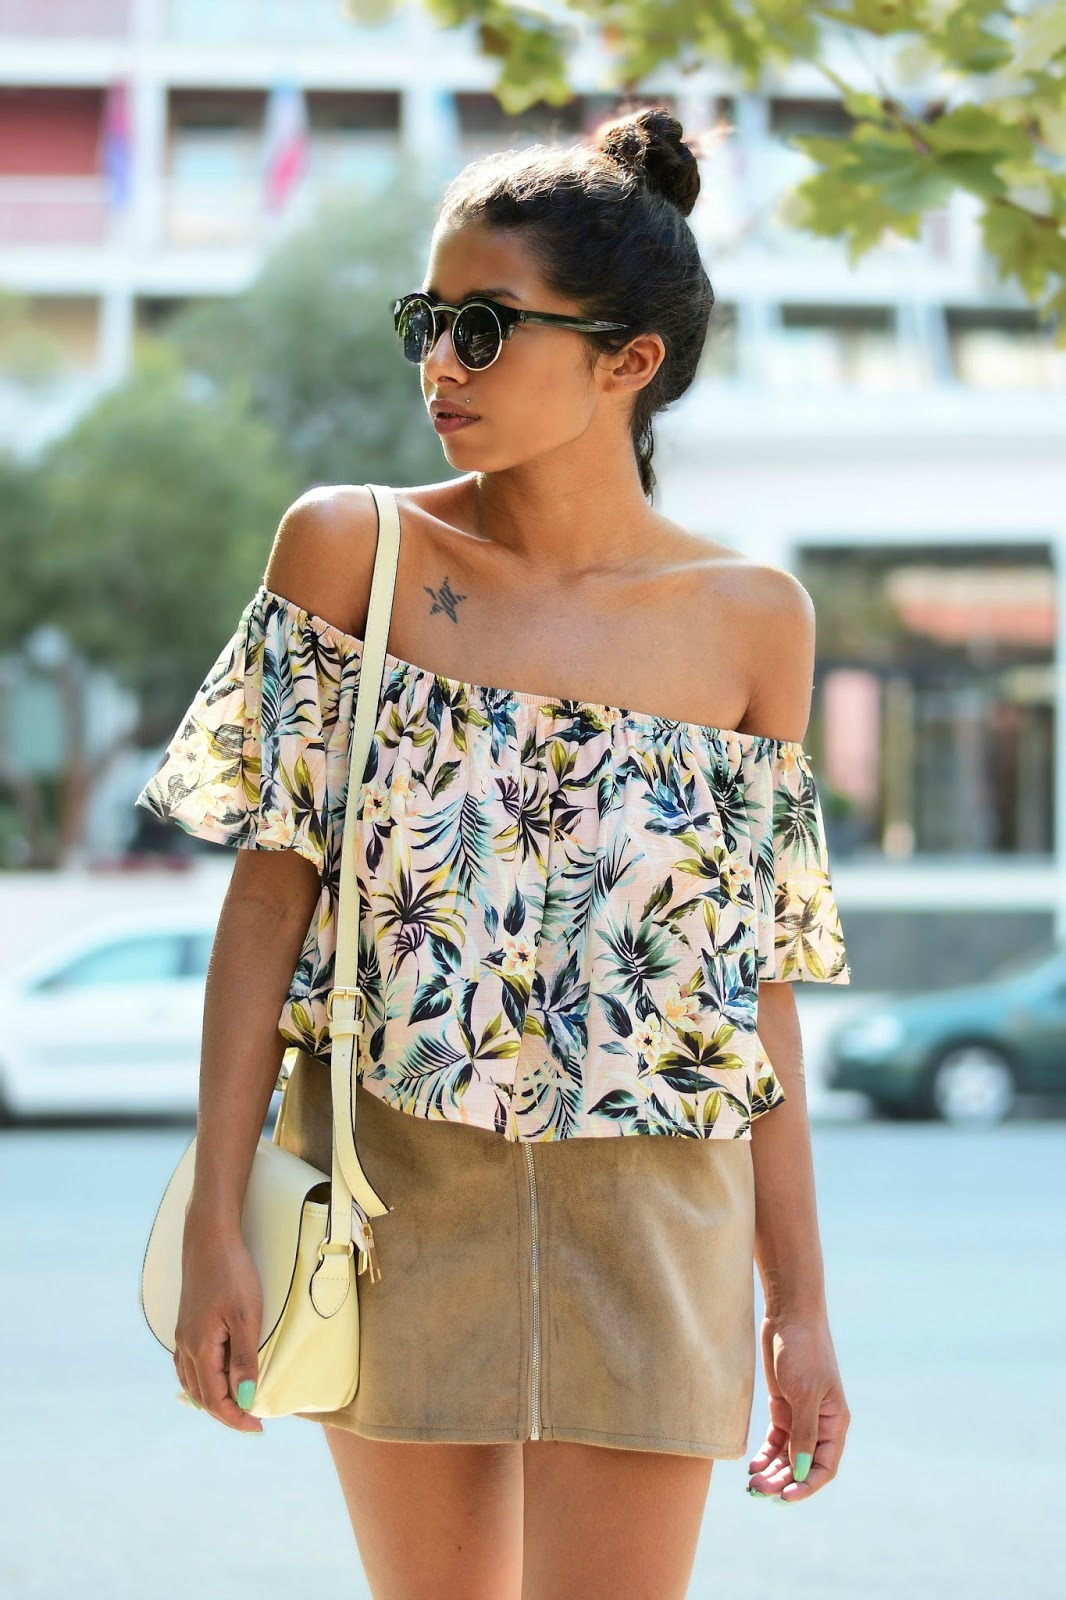 pretty off shoulder outfit inspiration for summer